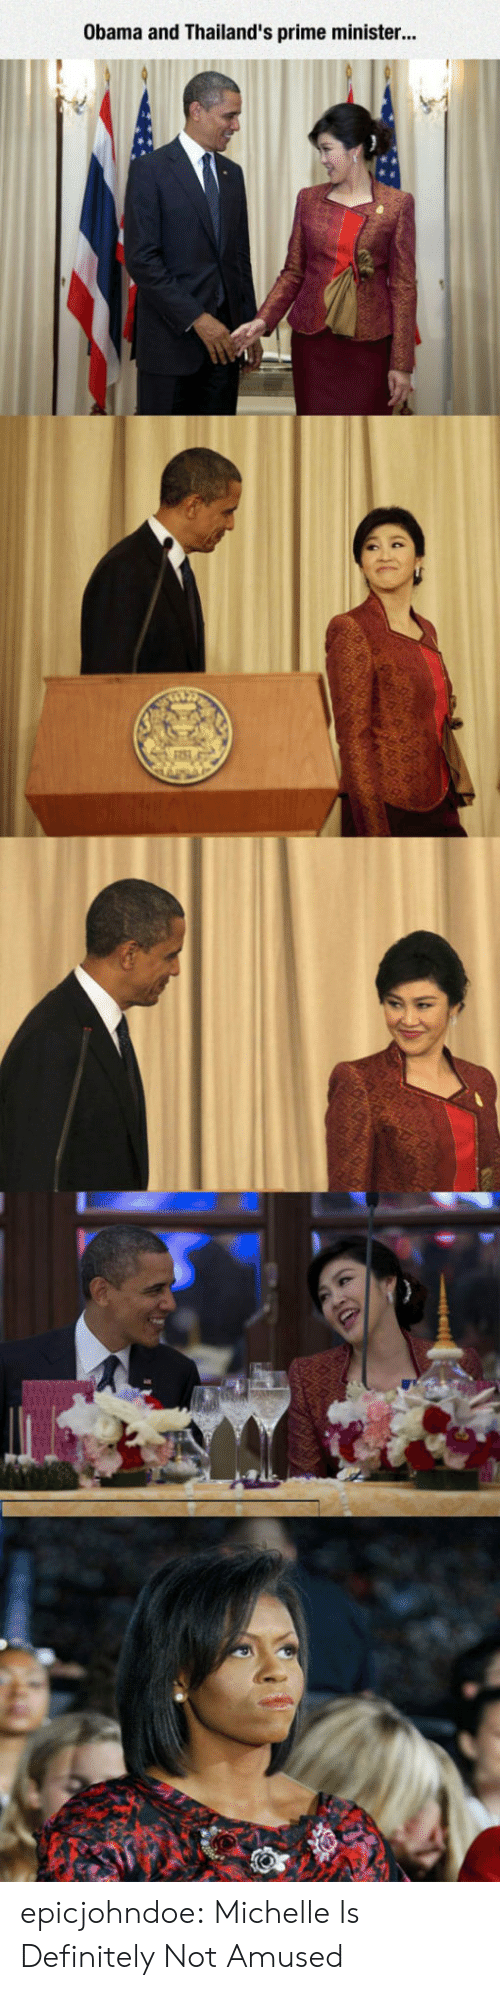 Not Amused: Obama and Thailand's prime minister... epicjohndoe:  Michelle Is Definitely Not Amused